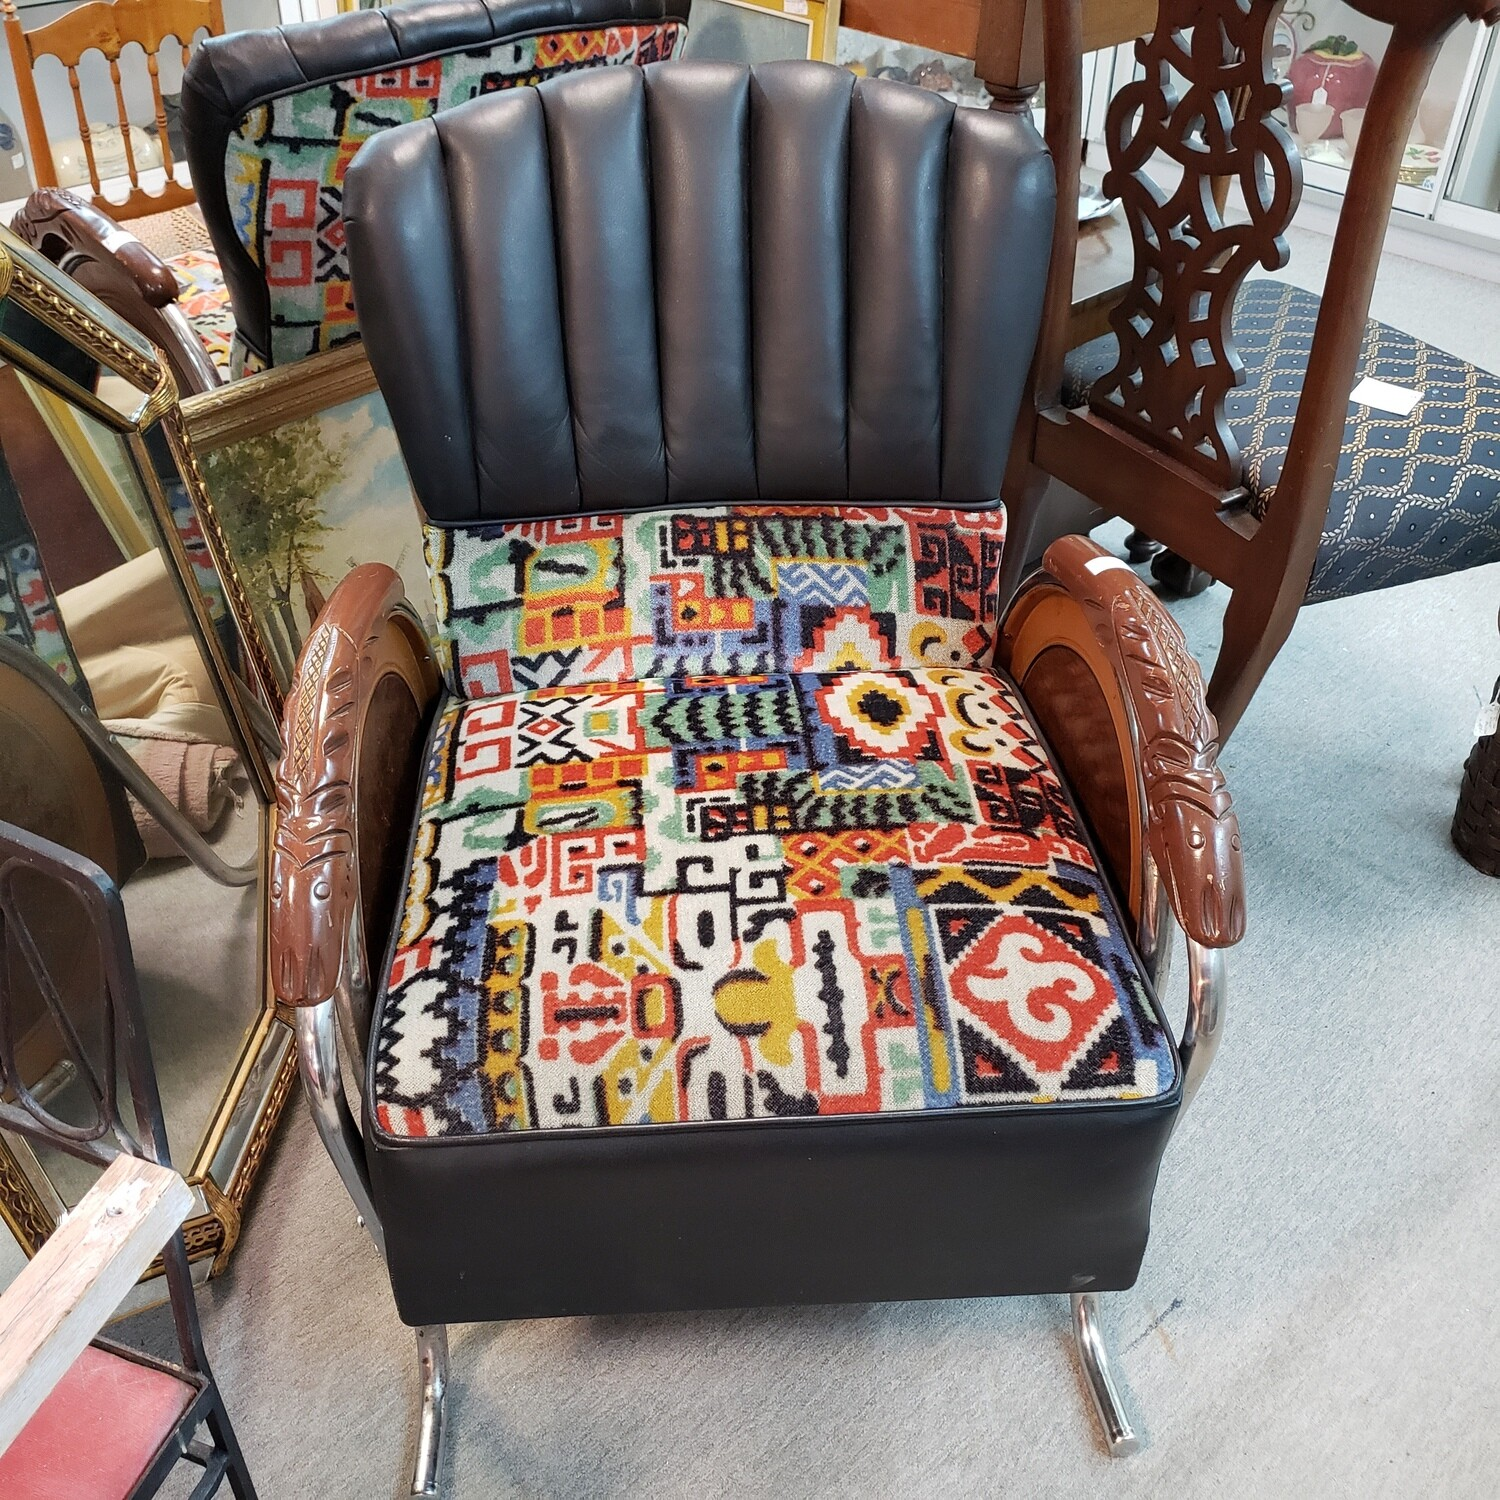 Pair of Unusual, Beautiful Art Deco Chairs - Leather, Fabric and Wood